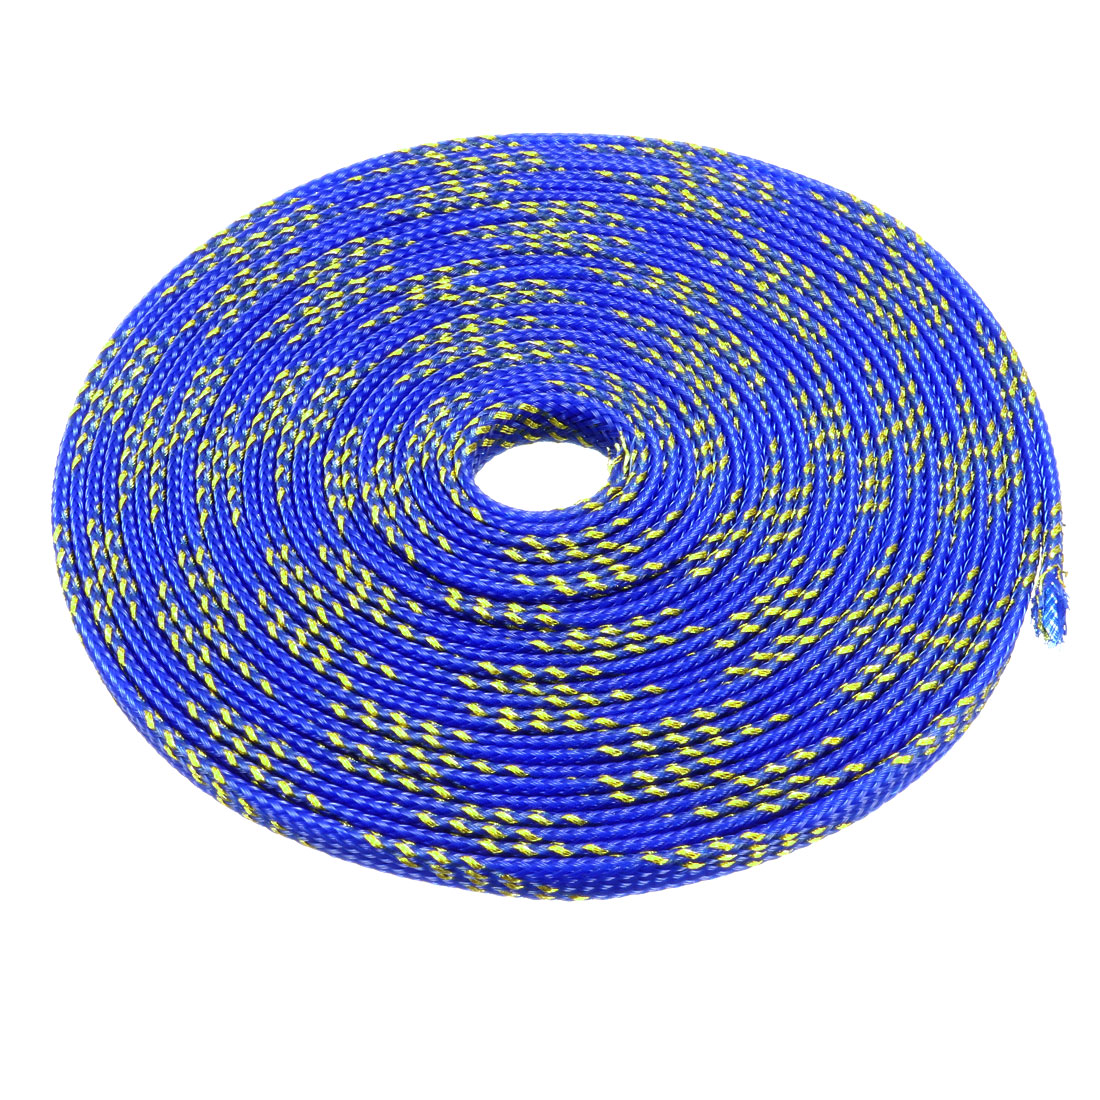 6mm Dia Tight Braided PET Expandable Sleeving Cable Wrap Sheath Golden Blue 16Ft